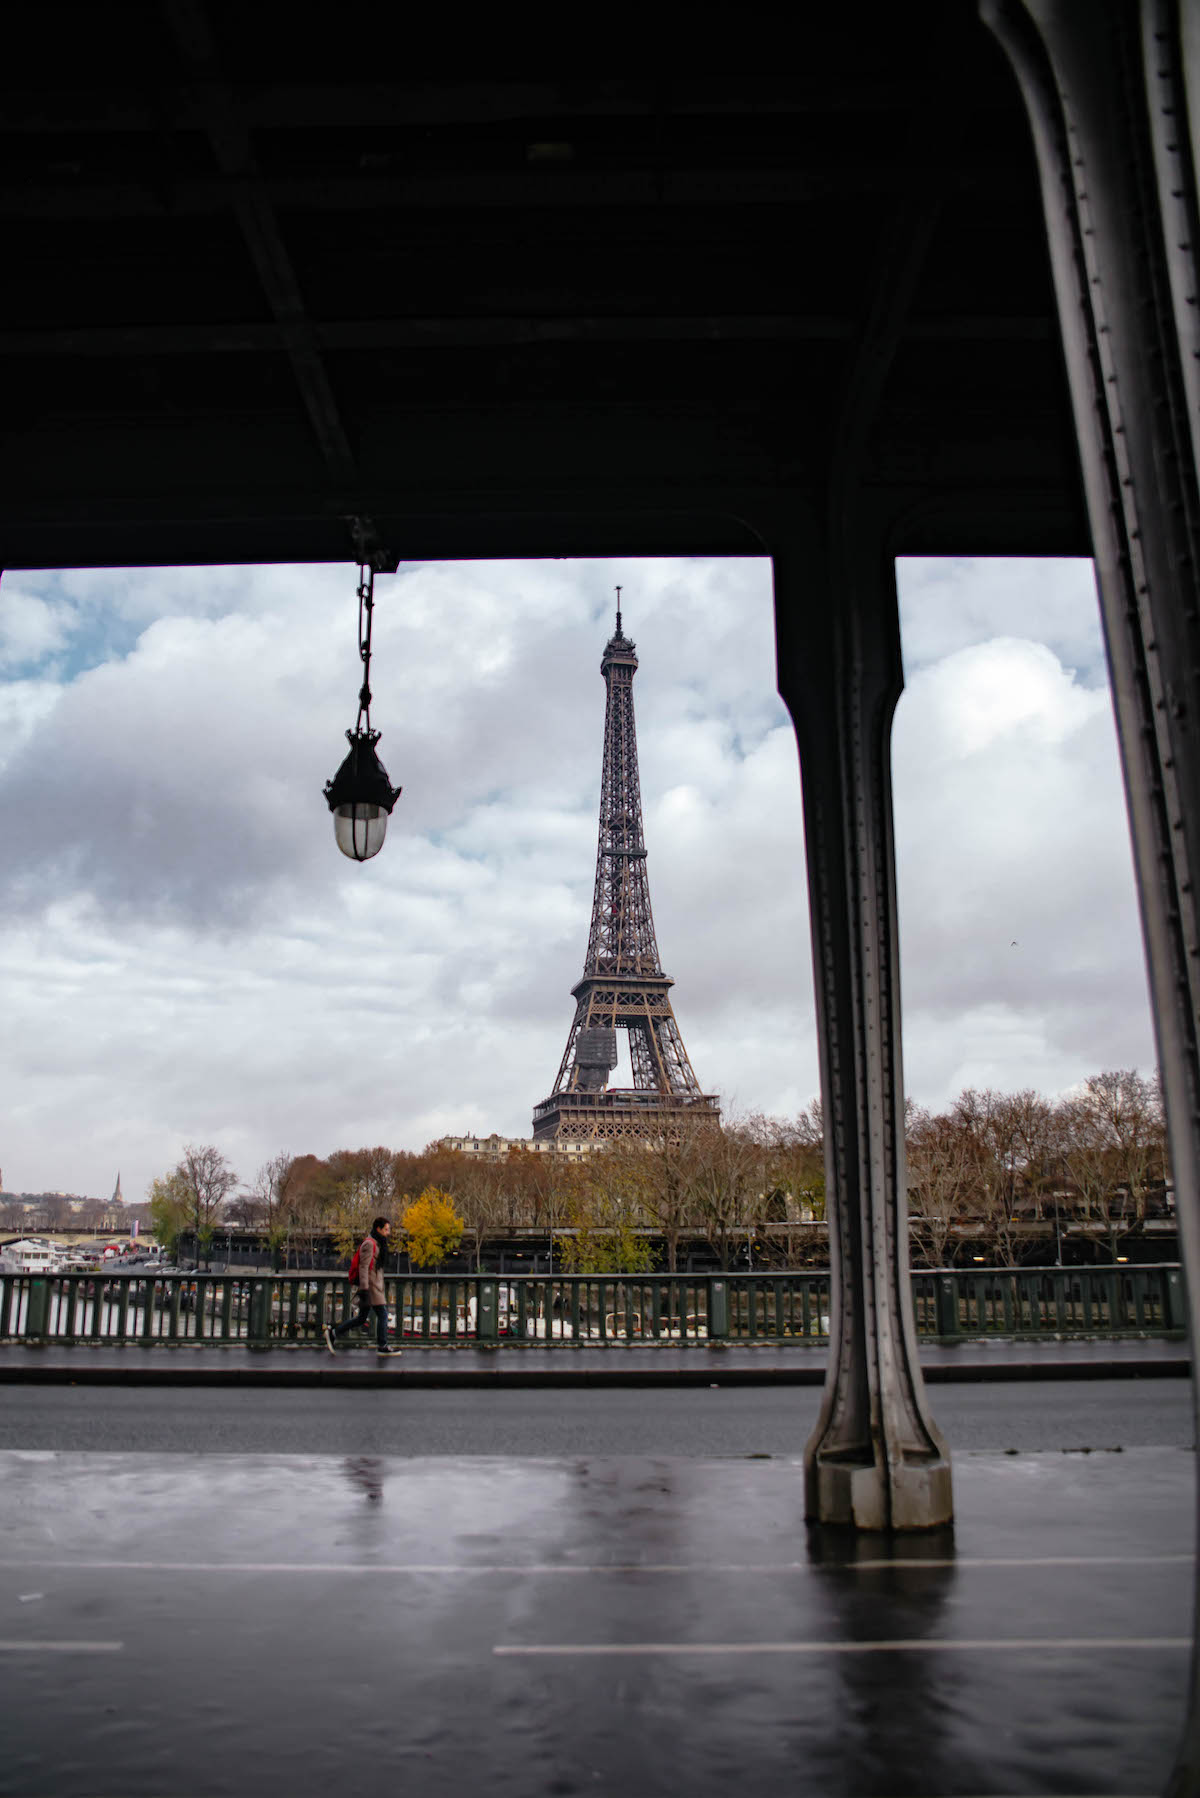 Eiffel Tower View From Pont de Bir-Hakeim